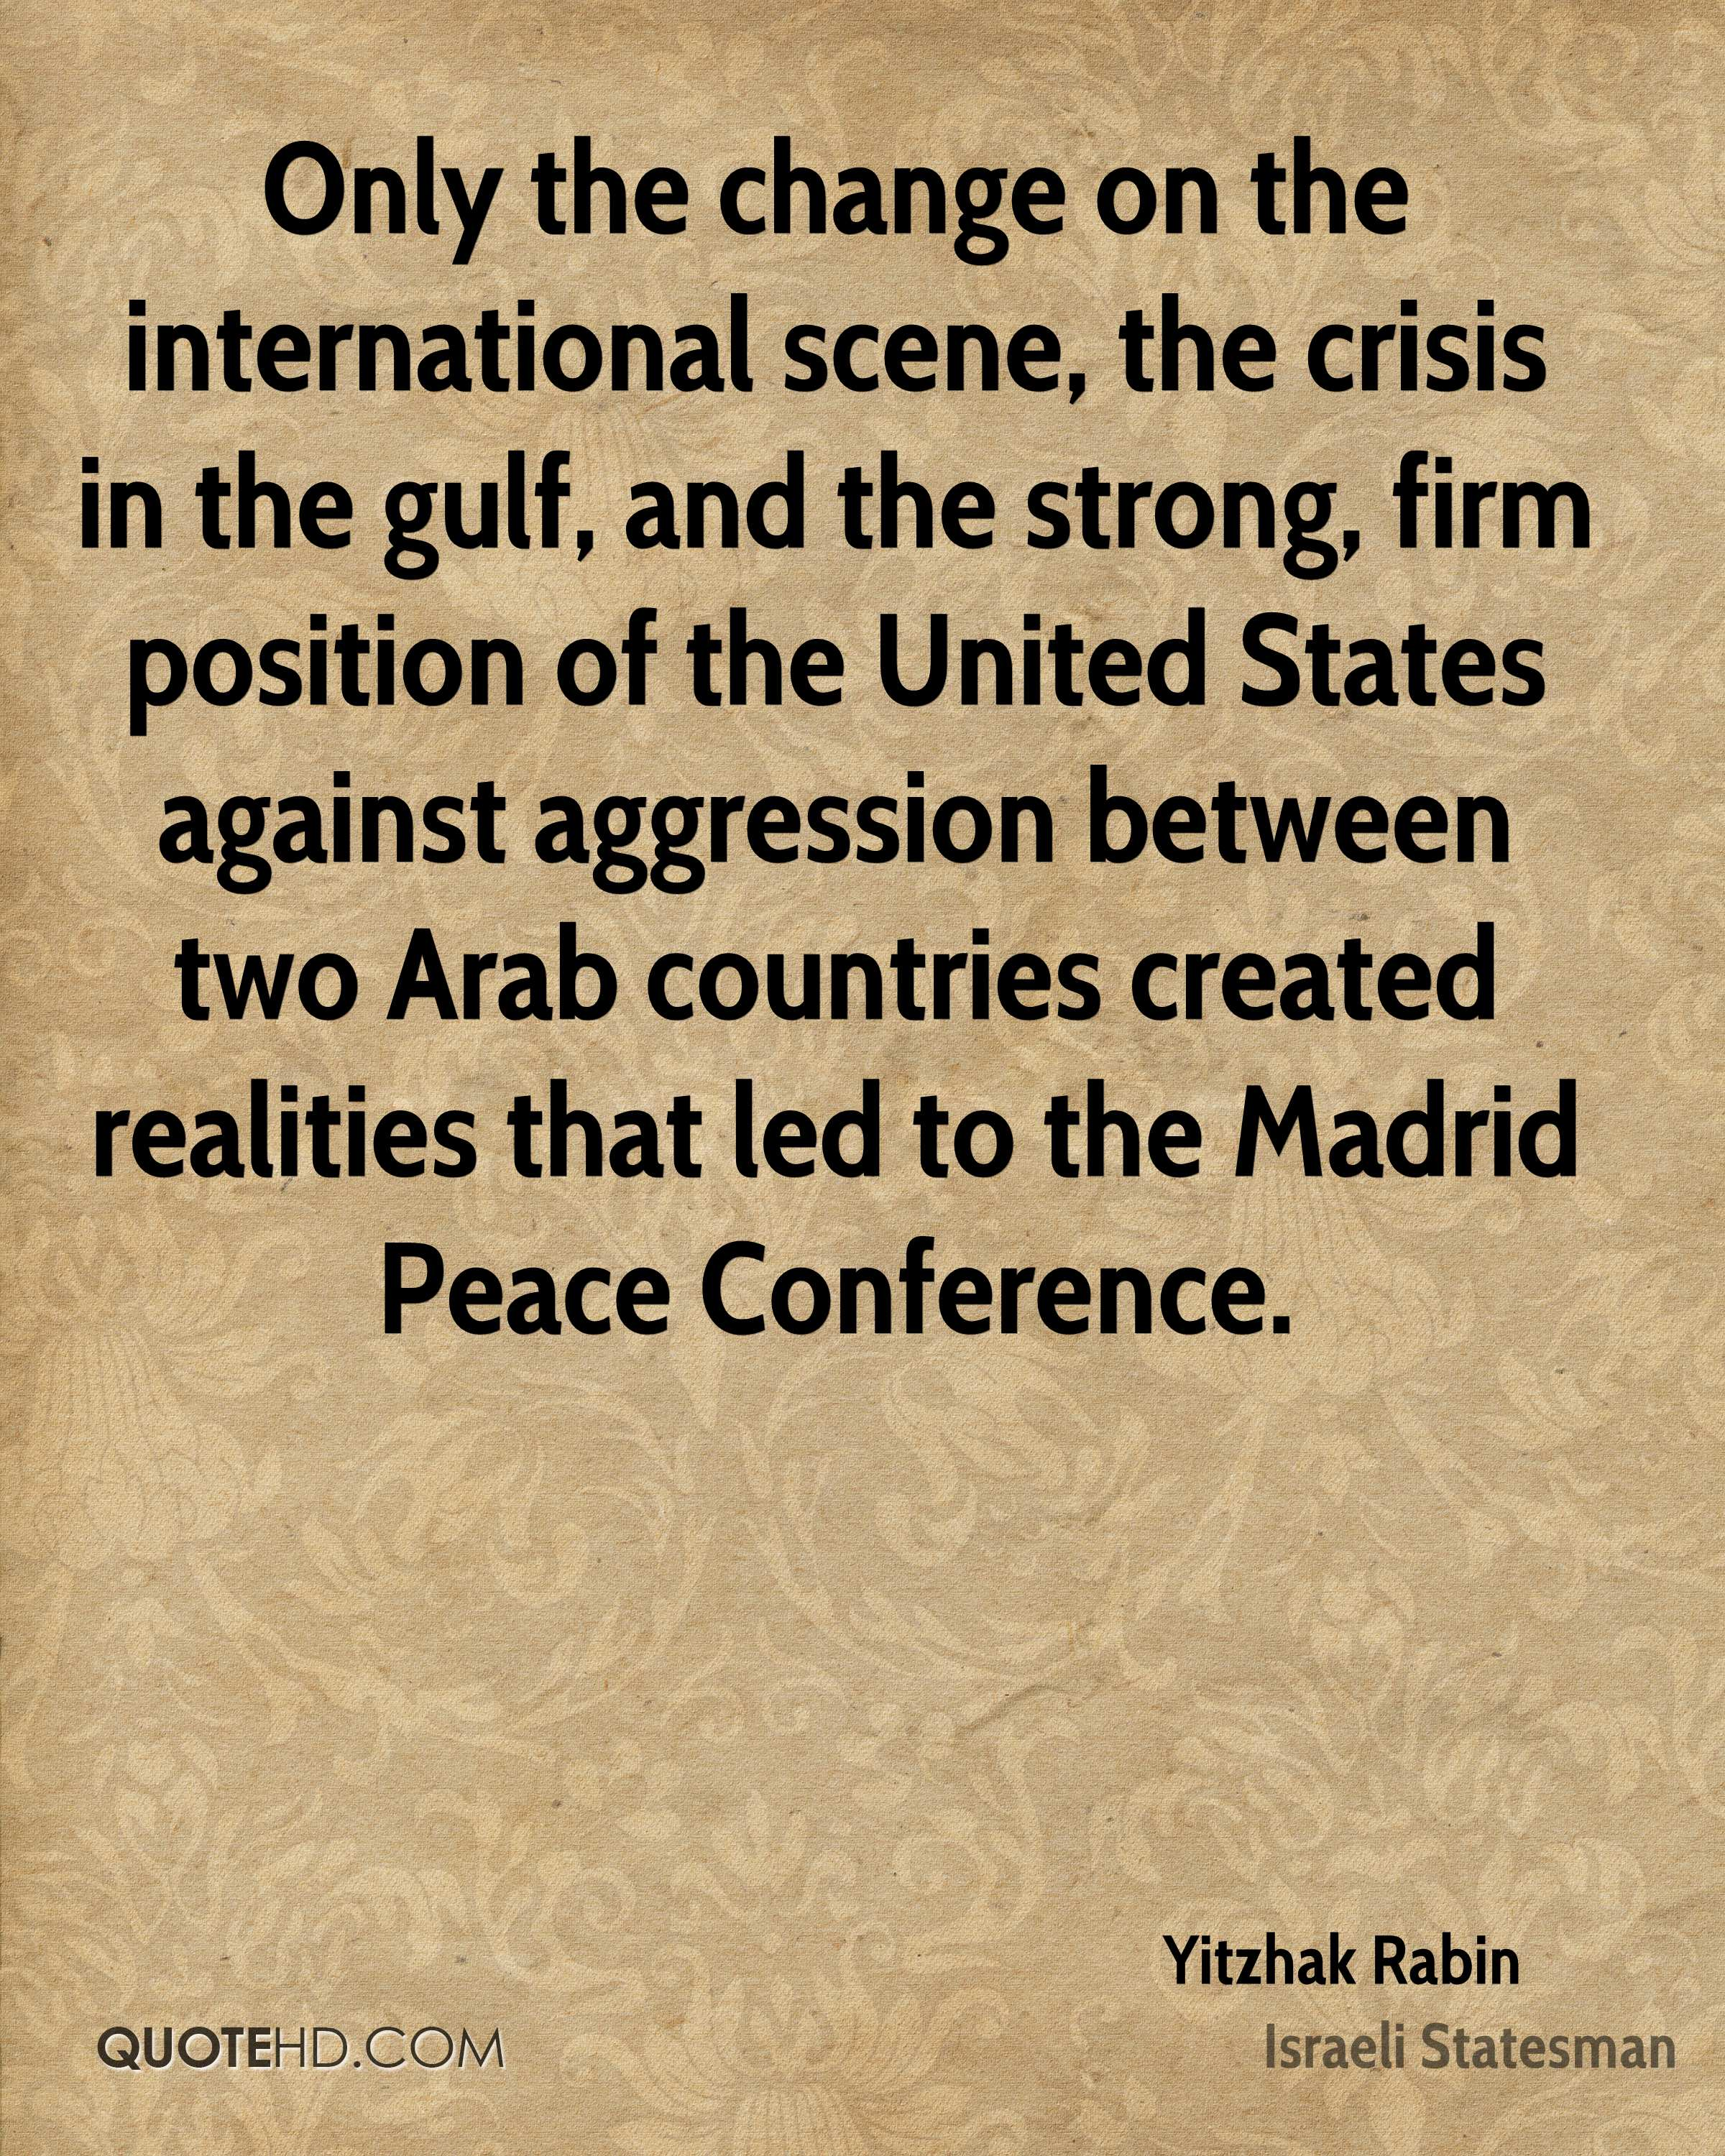 Only the change on the international scene, the crisis in the gulf, and the strong, firm position of the United States against aggression between two Arab countries created realities that led to the Madrid Peace Conference.